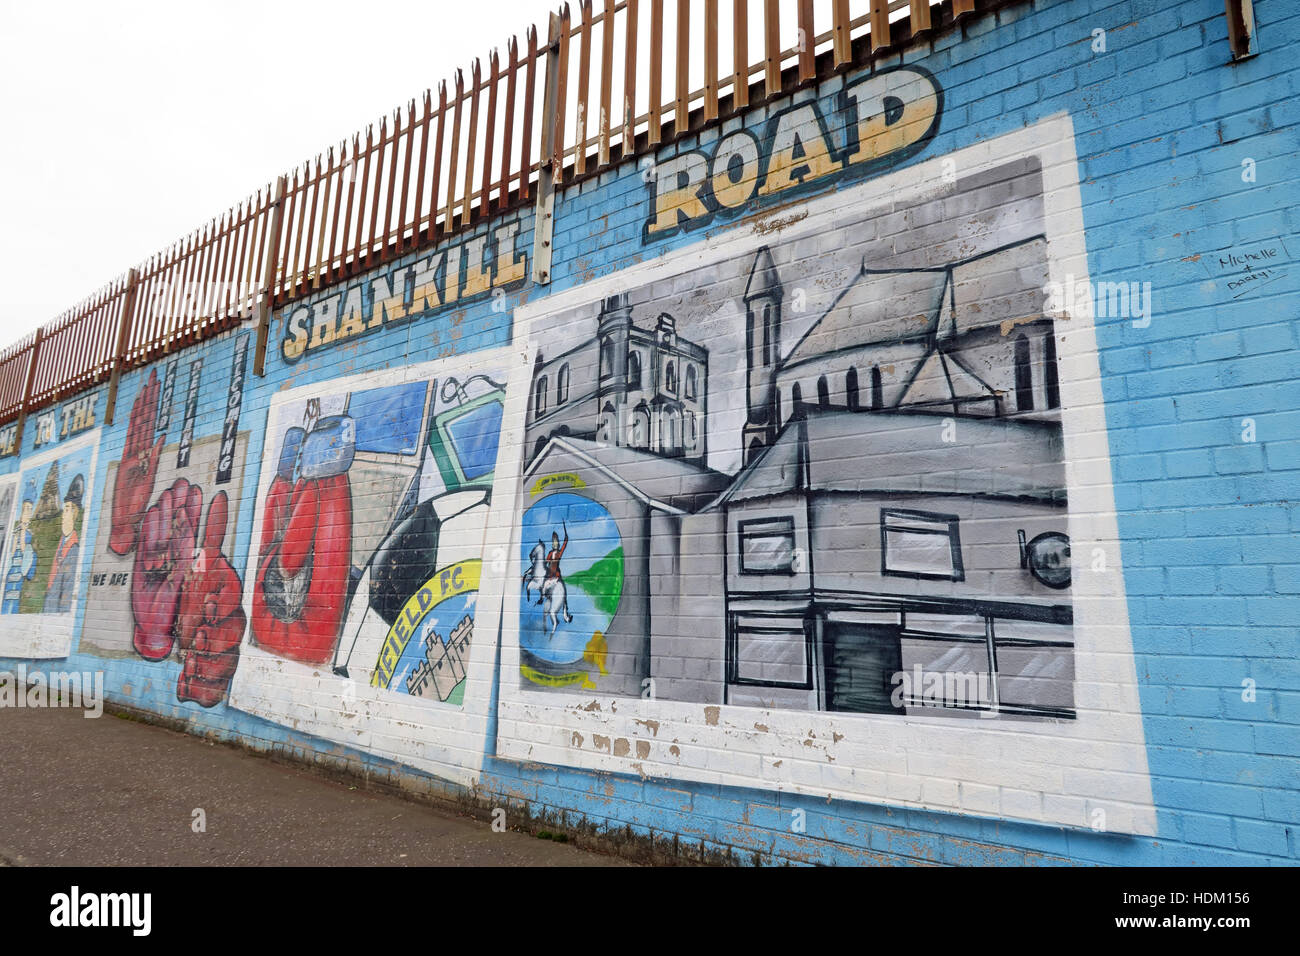 Shankill Road, Belfast International Peace Wall,Cupar way,West Belfast,NI,UK - Stock Image